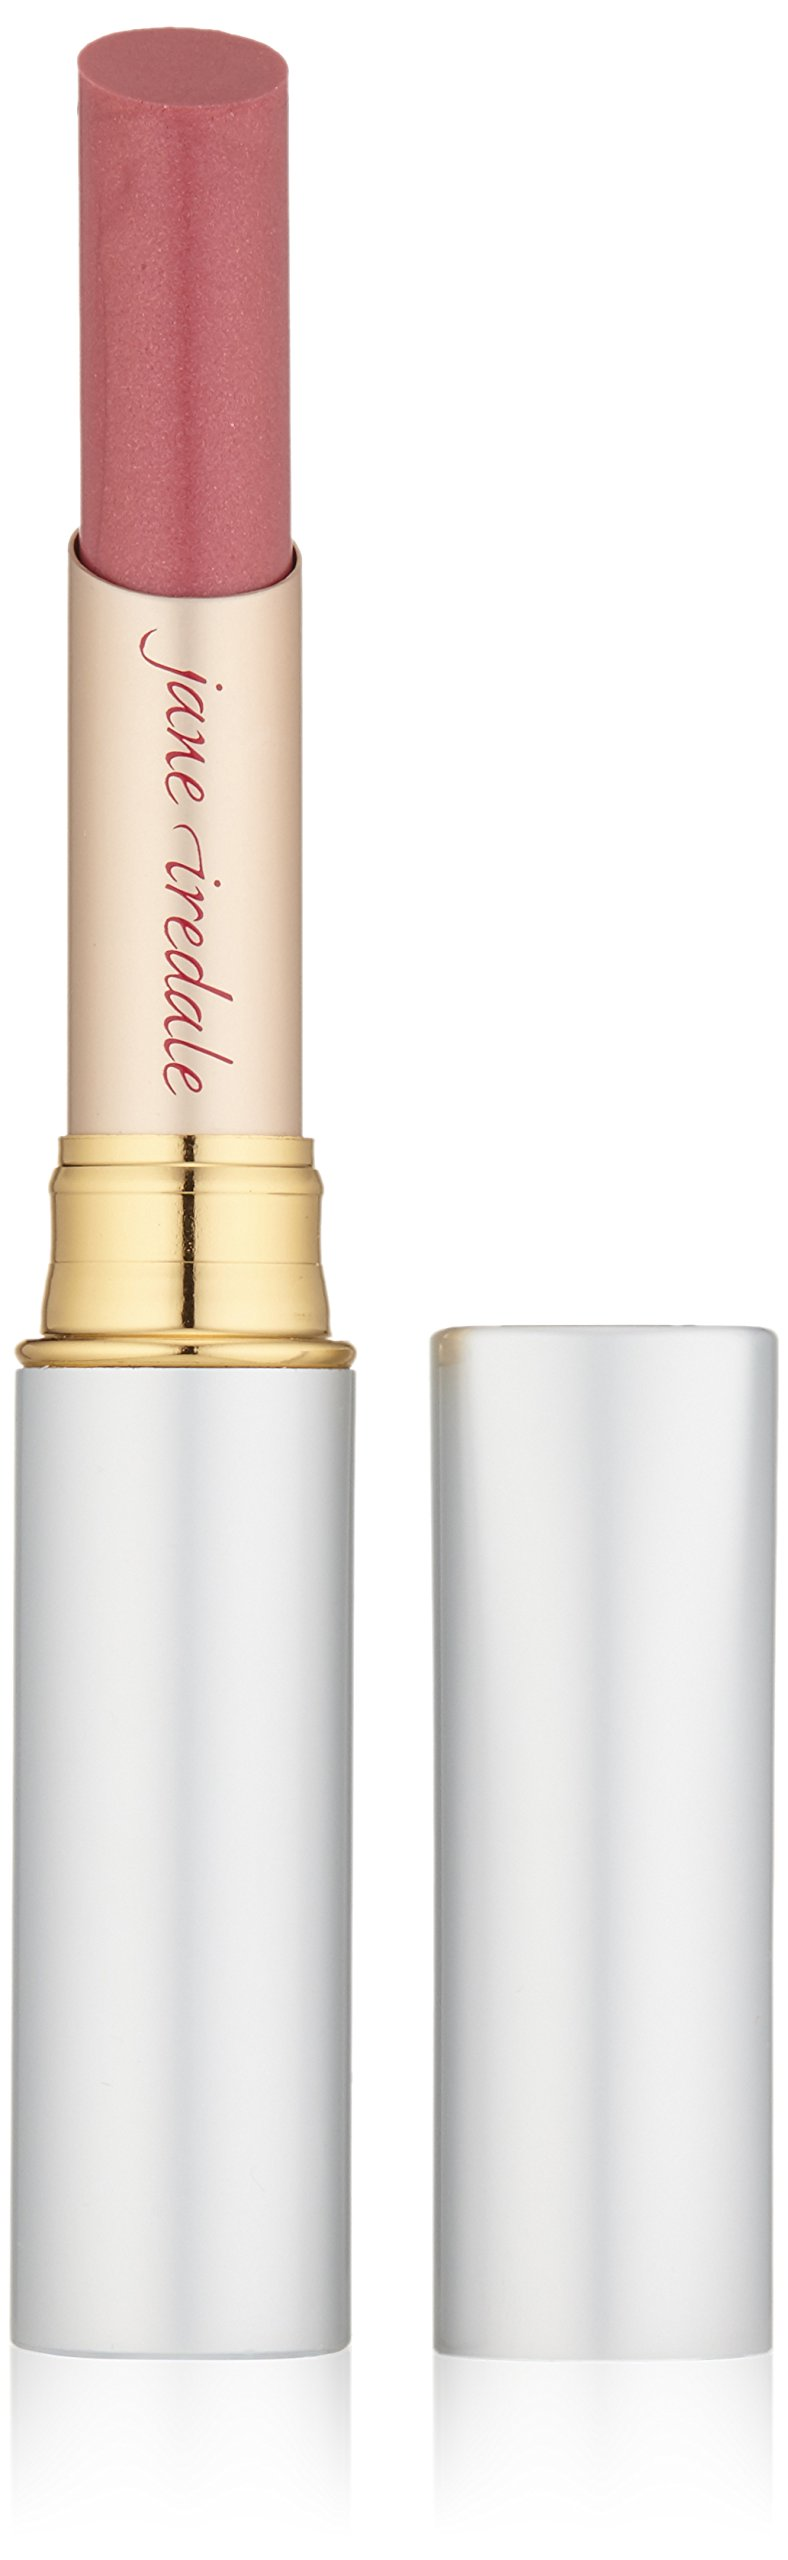 Jane Iredale Just Kissed Lip Plumper, Milan, 0.1 Ounce by jane iredale (Image #1)